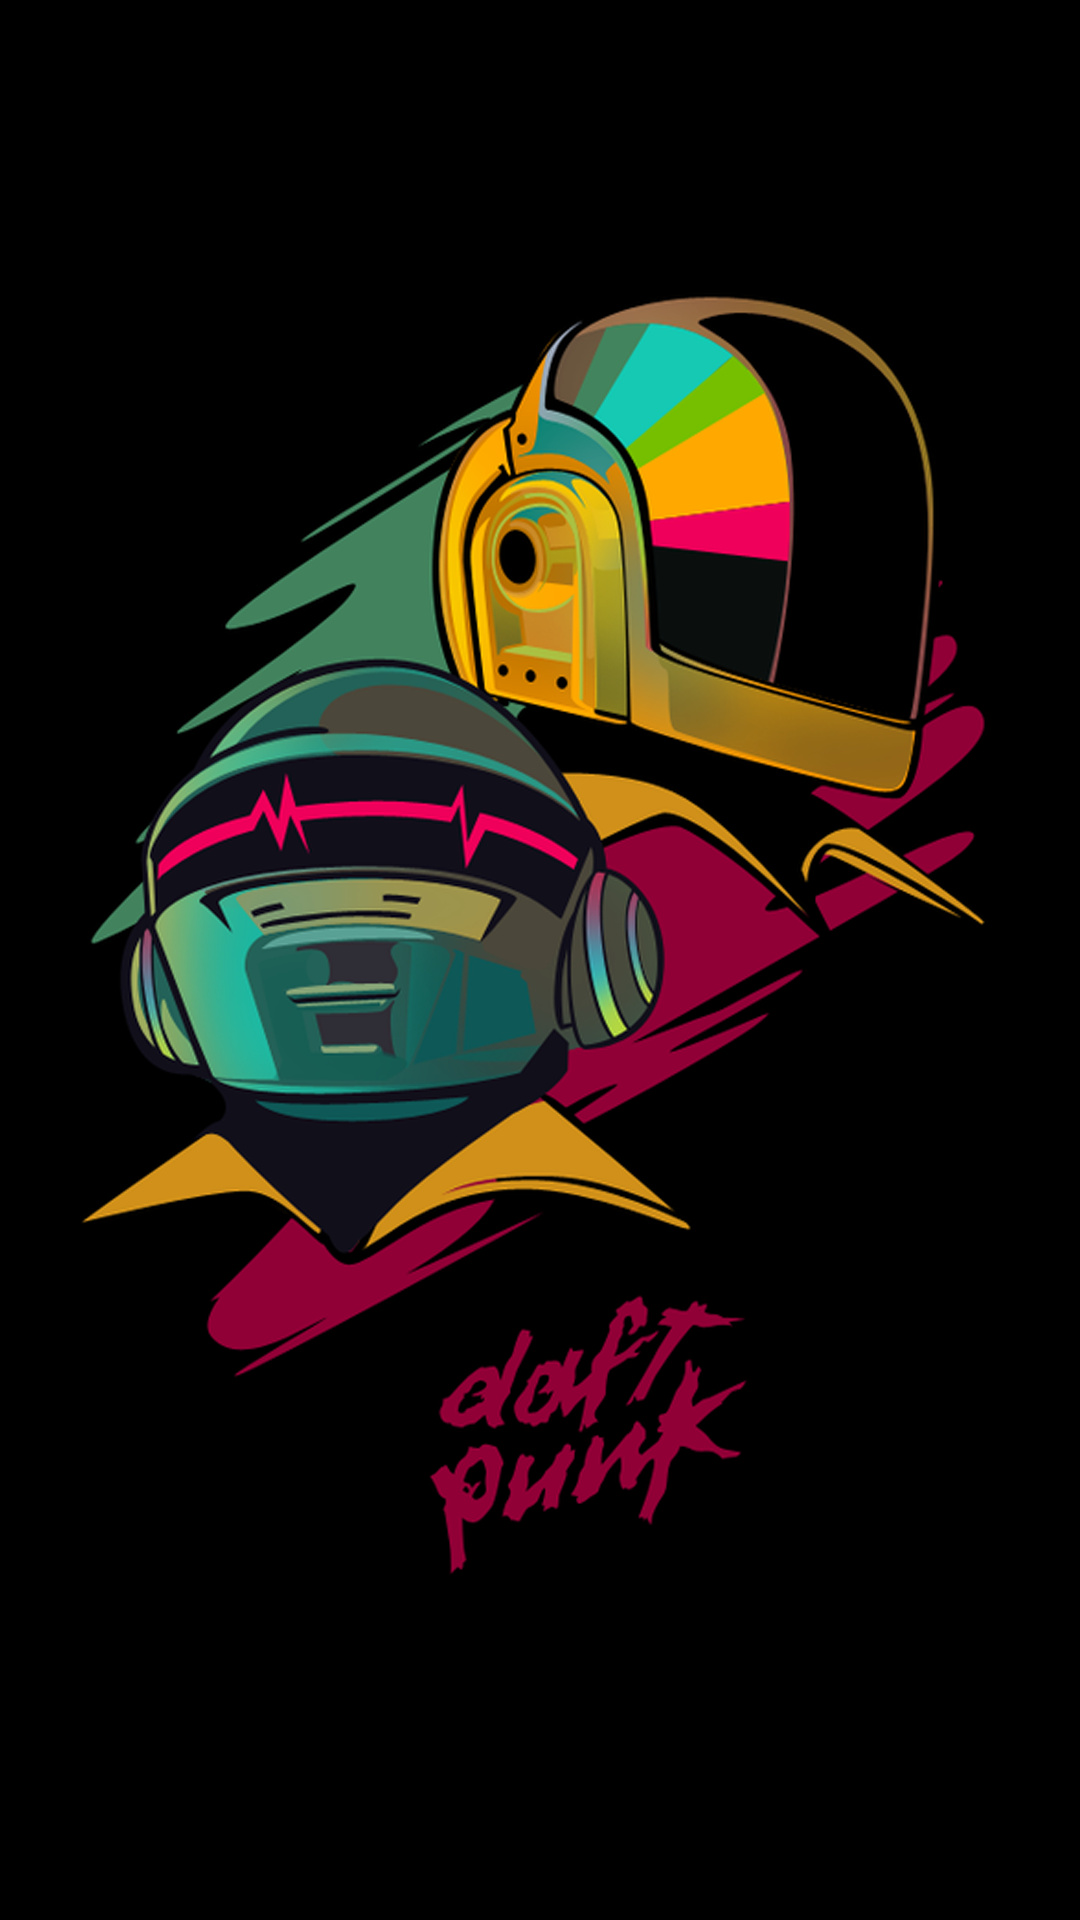 iPhone wallpaper daft punk colors Les 3Wallpapers iPhone du jour (19/03/2018)